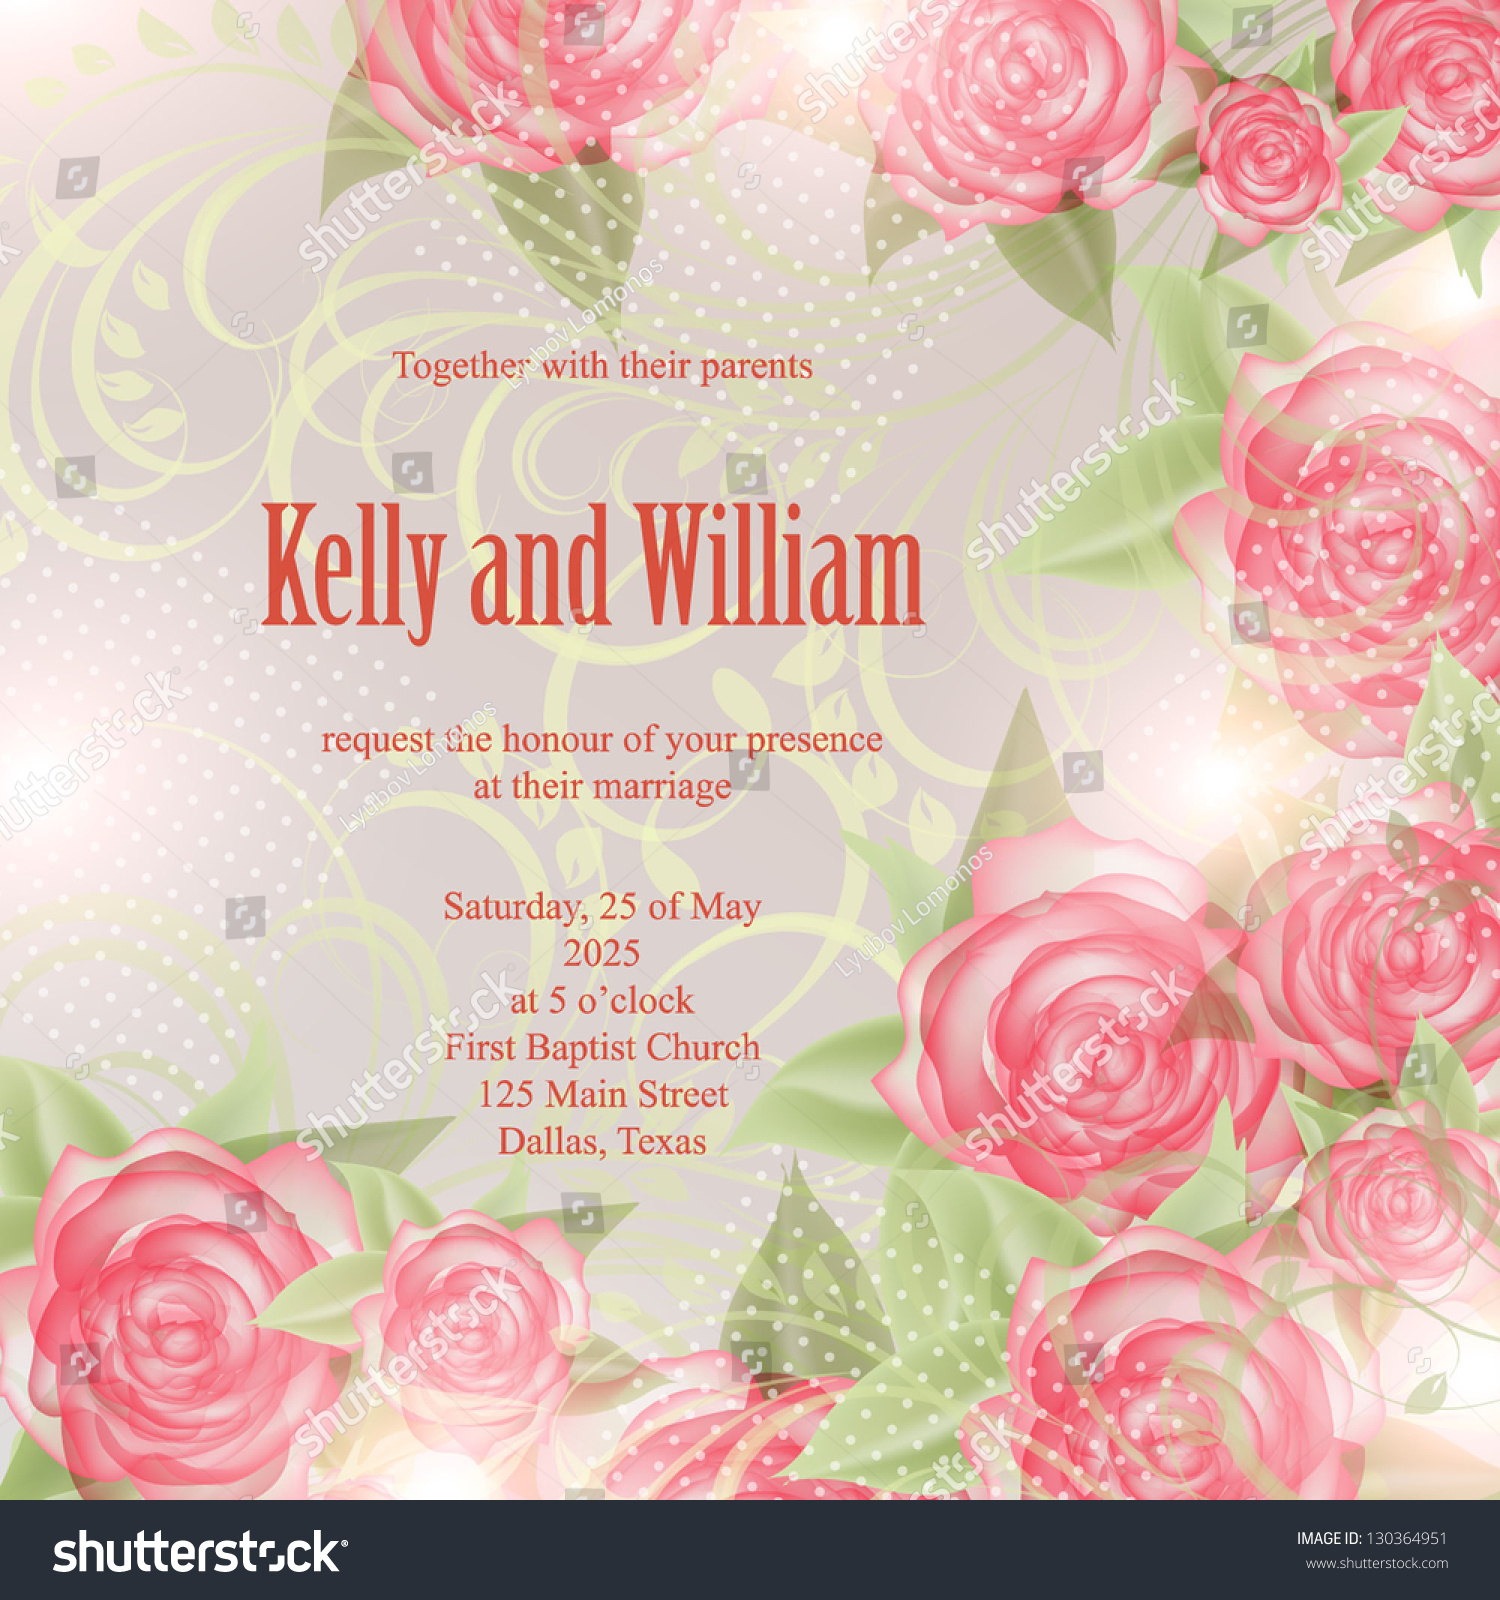 Invitation wedding card abstract floral background em vetor stock invitation or wedding card with abstract floral background stopboris Gallery